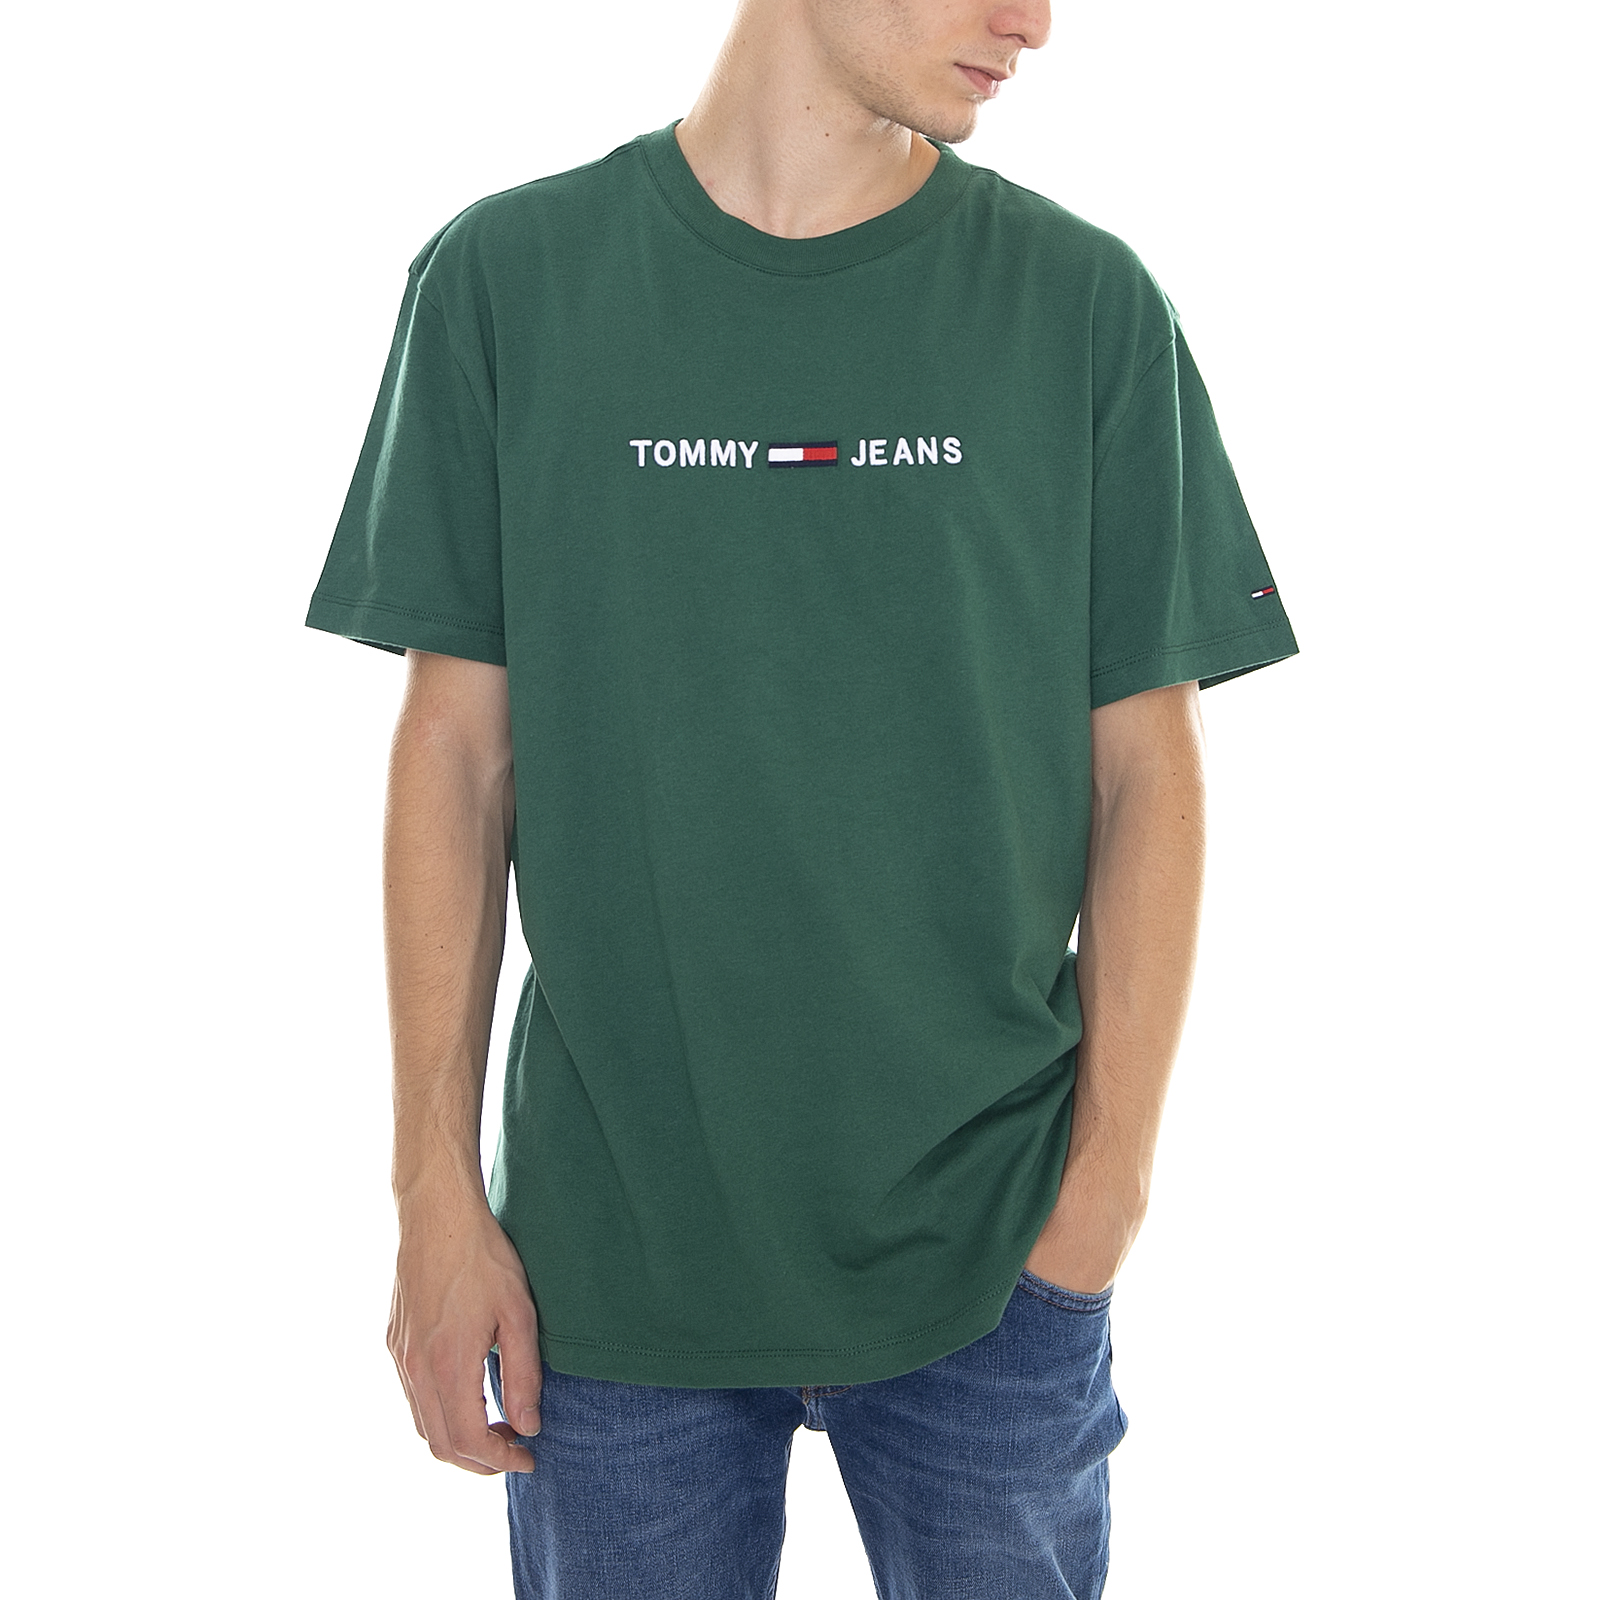 Details About Tommy Hilfiger T Shirt Tjm Small Text Tee Hunter Green Green